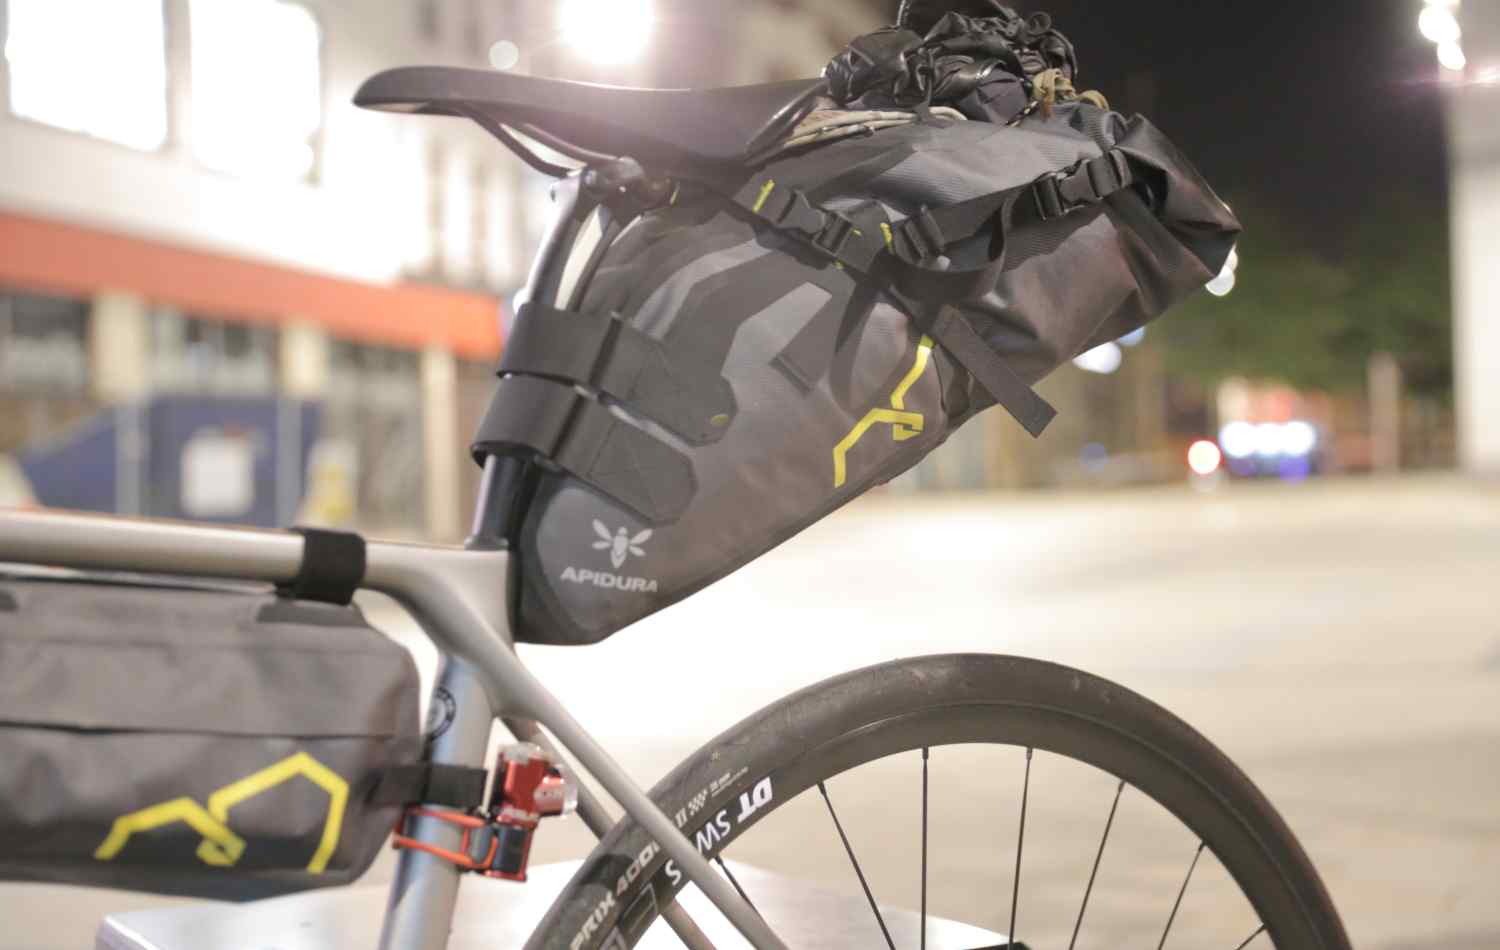 A seat pack strapped to a split seatpost, designed for comfort